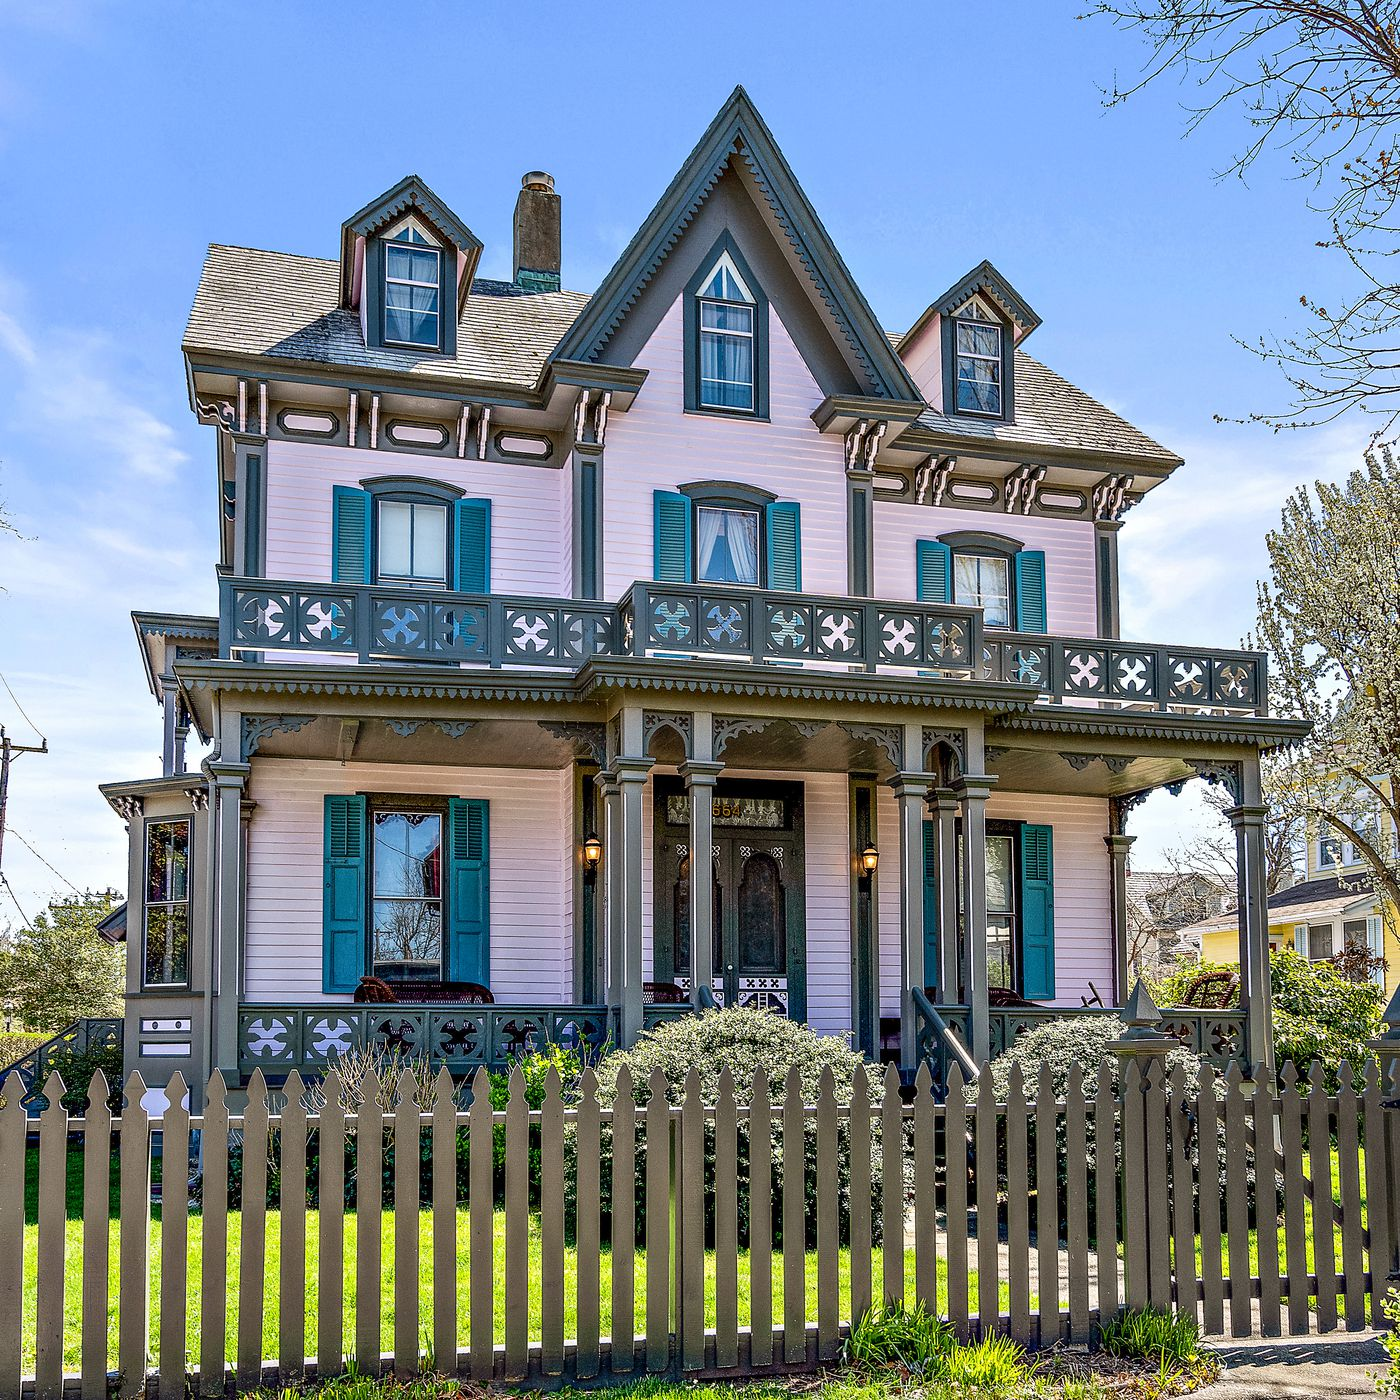 Excellent 5 Historic Victorian Homes For Sale In Cape May Curbed Philly Download Free Architecture Designs Scobabritishbridgeorg